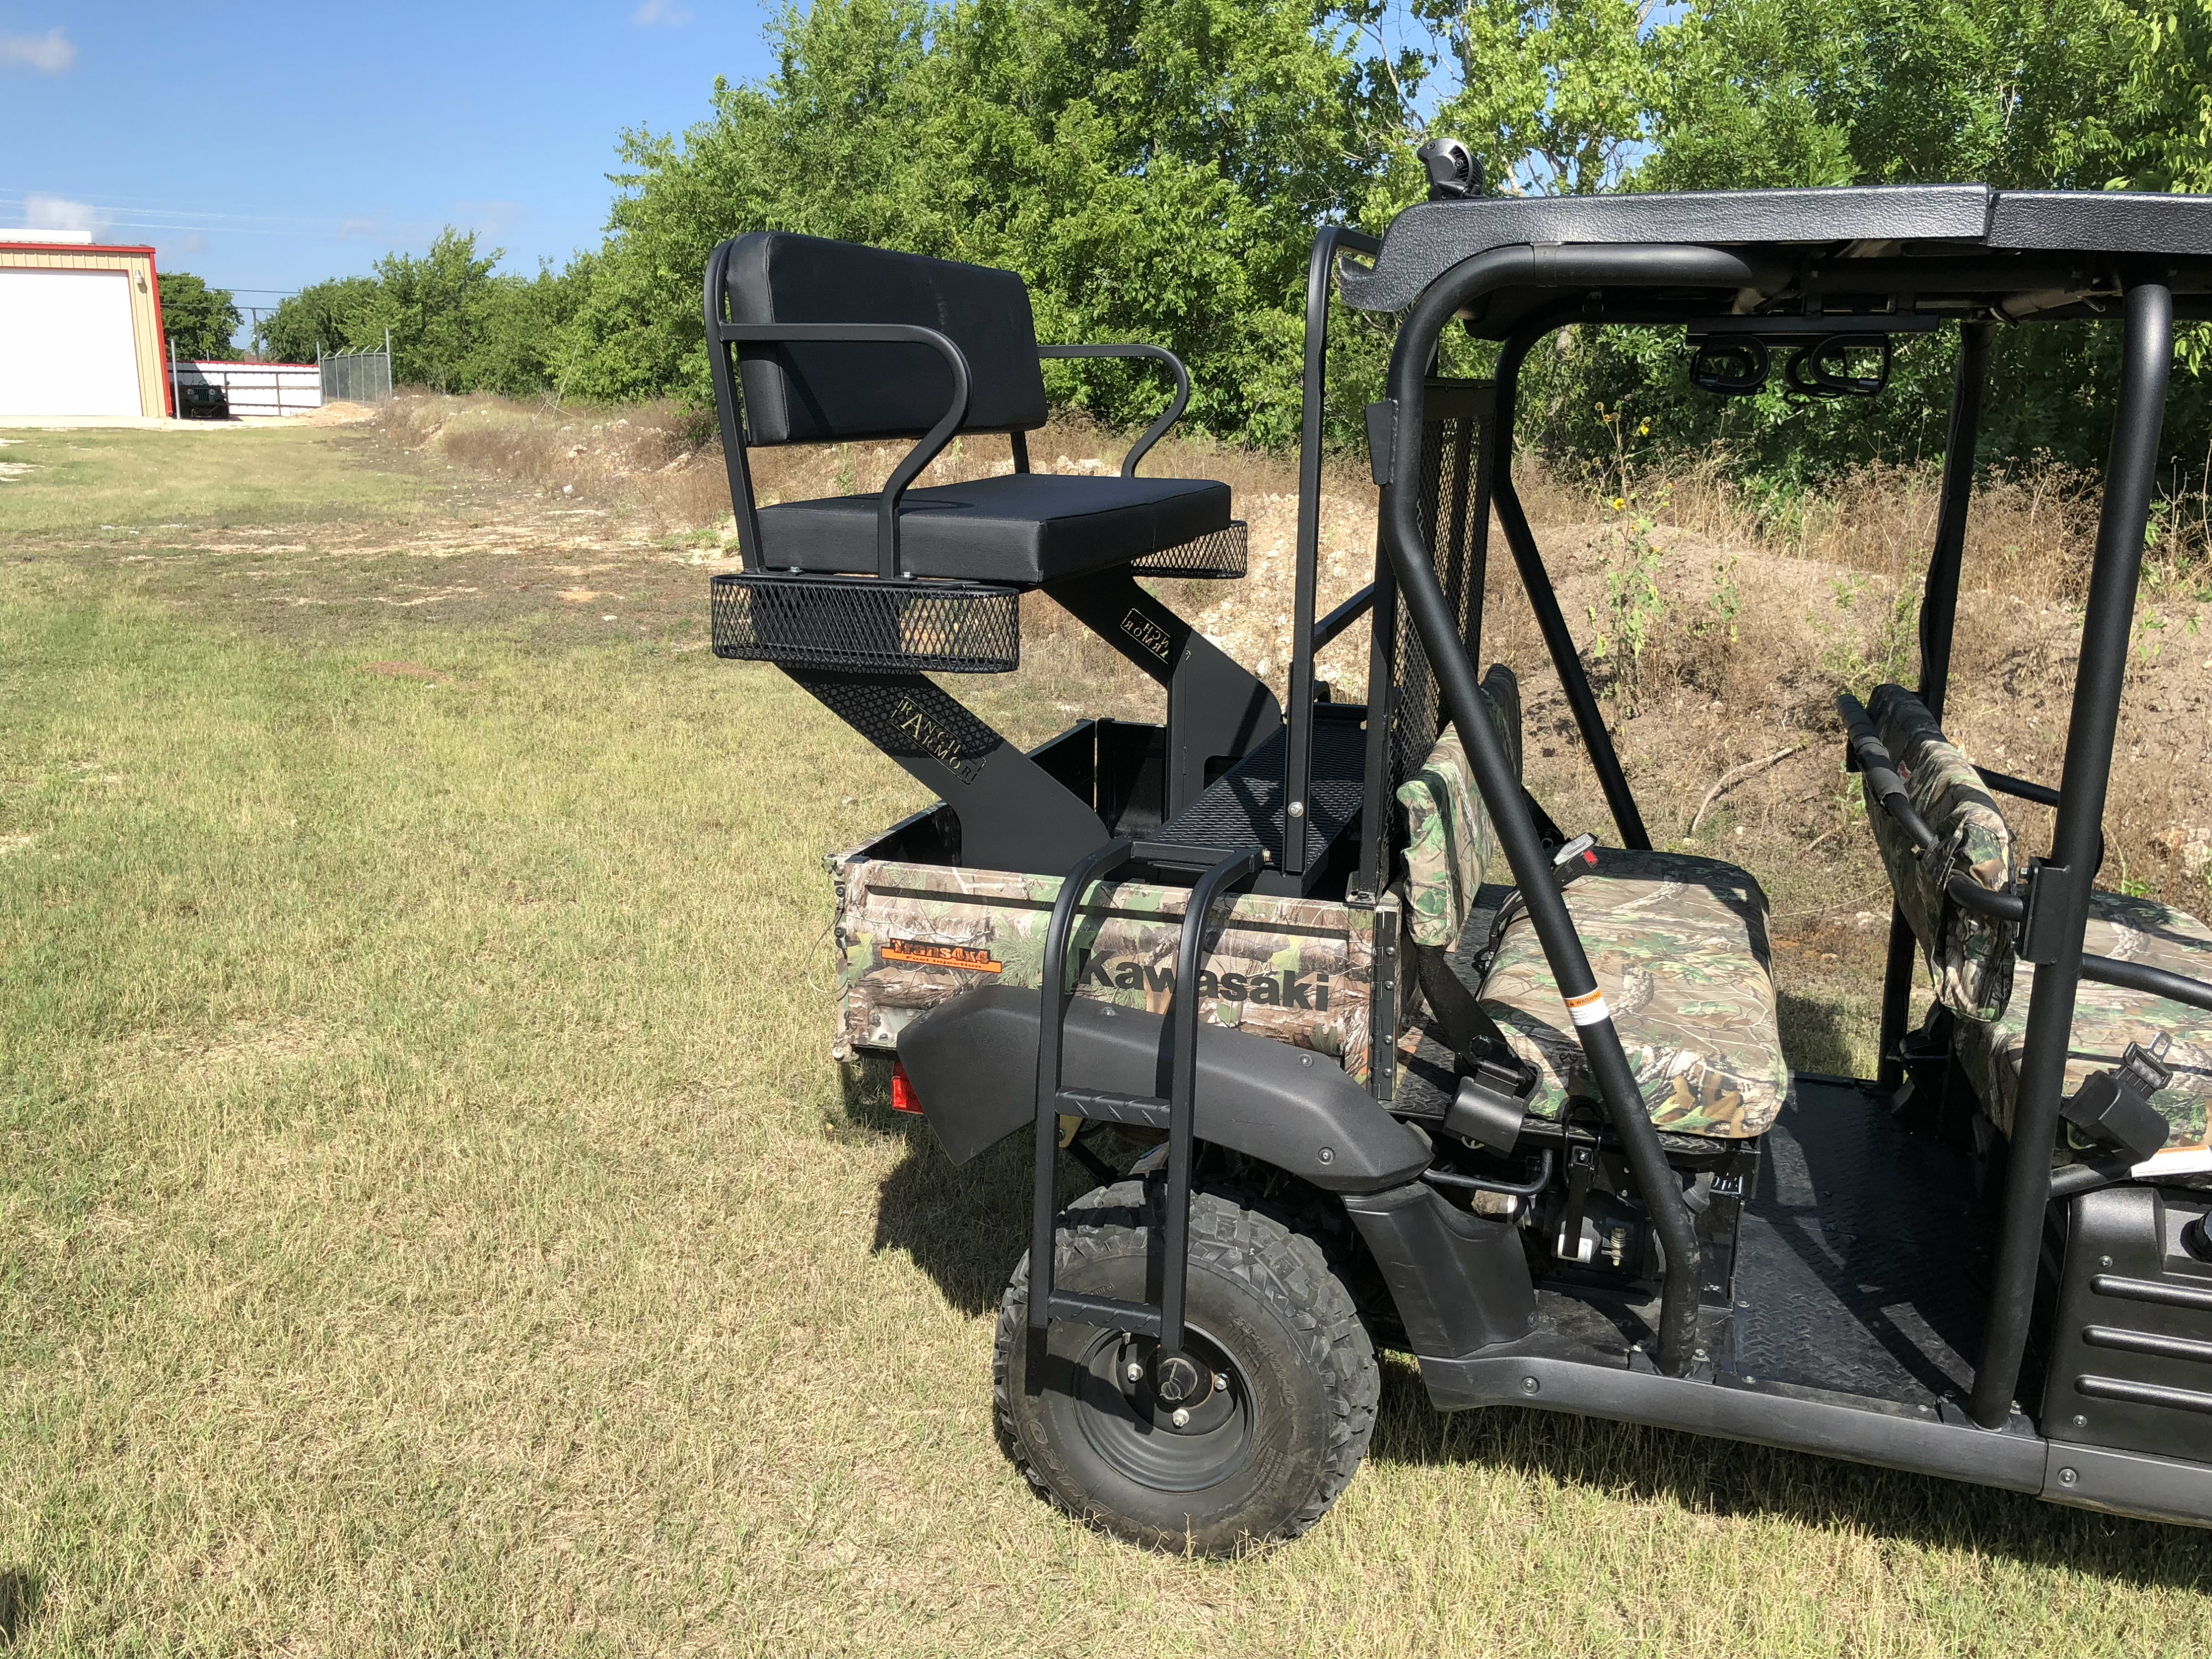 kawasaki-mule-trans-3010-and-4010-high-seat-hunting-rack.jpg